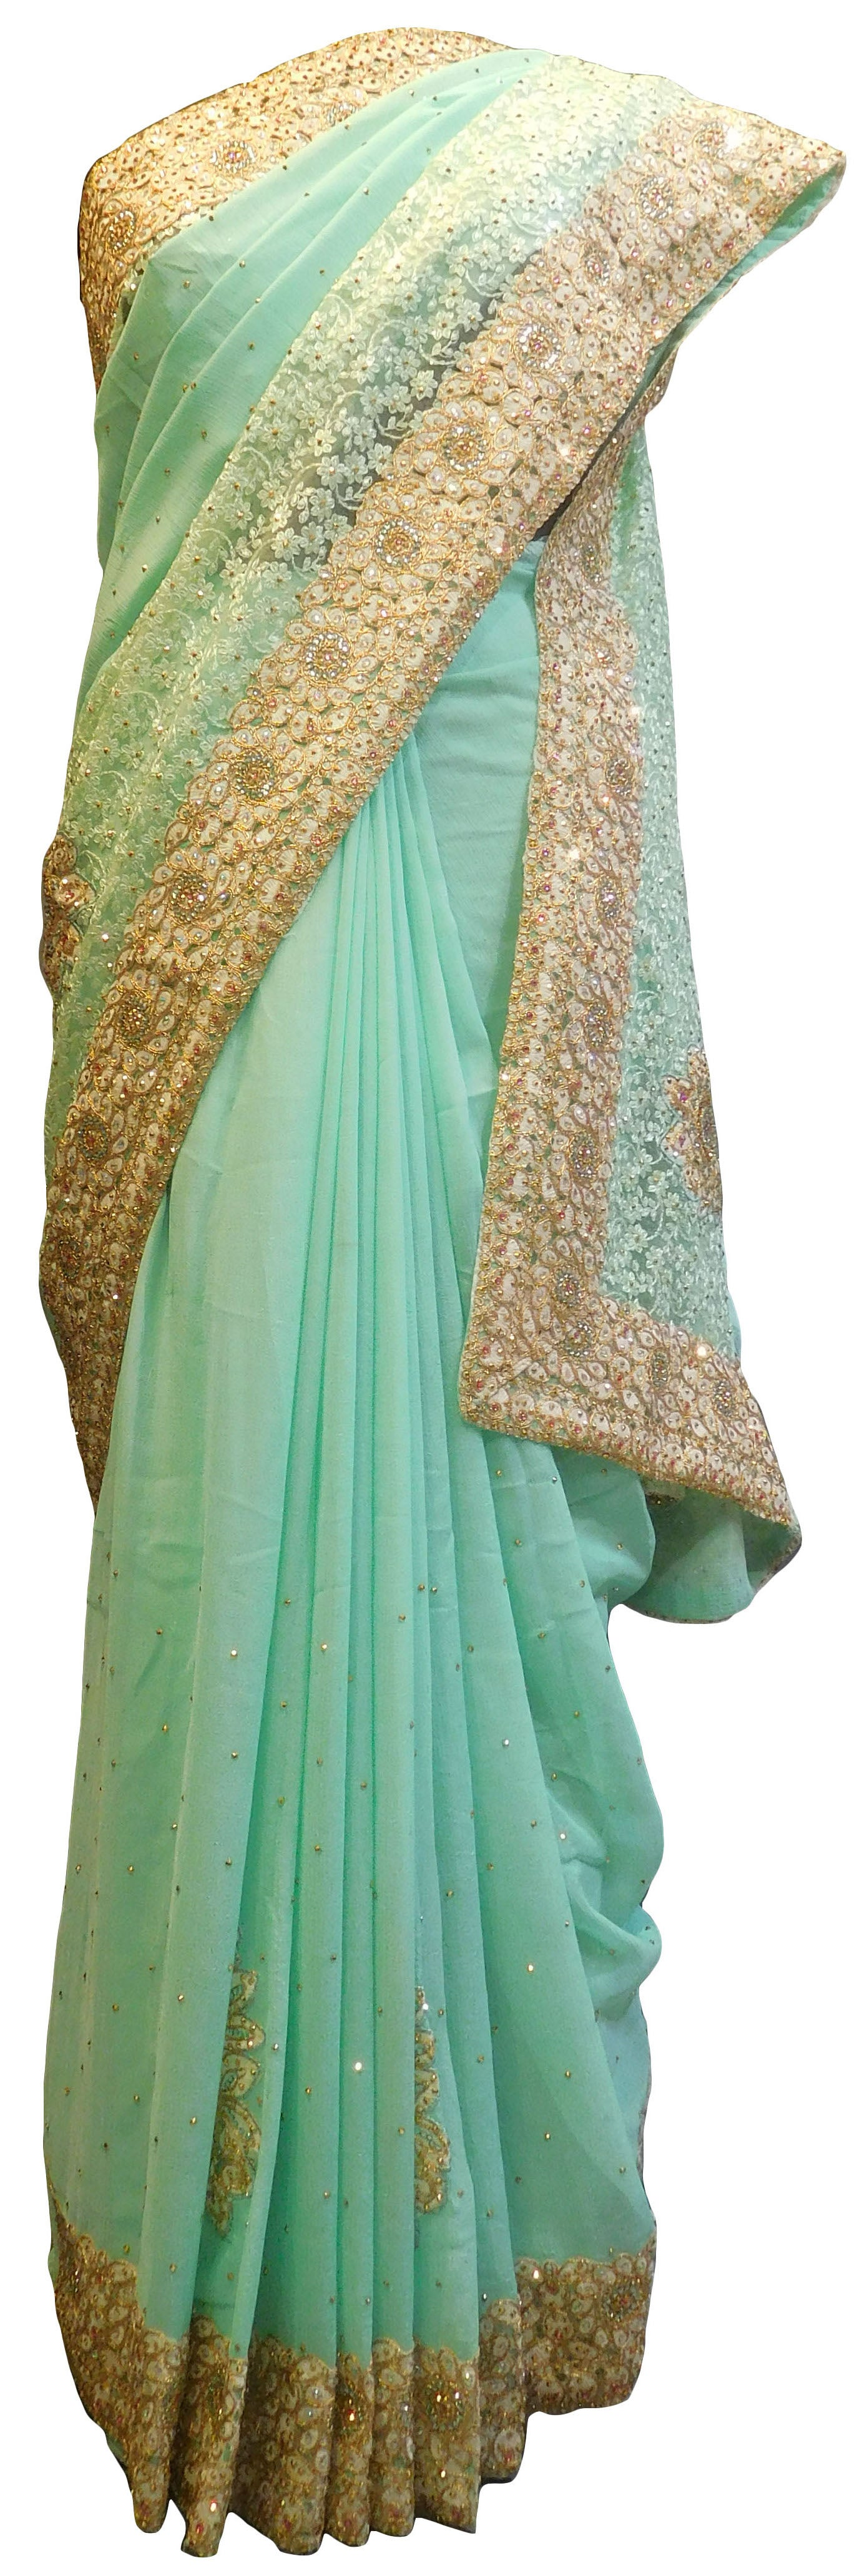 SMSAREE Turquoise Designer Wedding Partywear Georgette Thread Stone Zari & Sequence Hand Embroidery Work Bridal Saree Sari With Blouse Piece E801